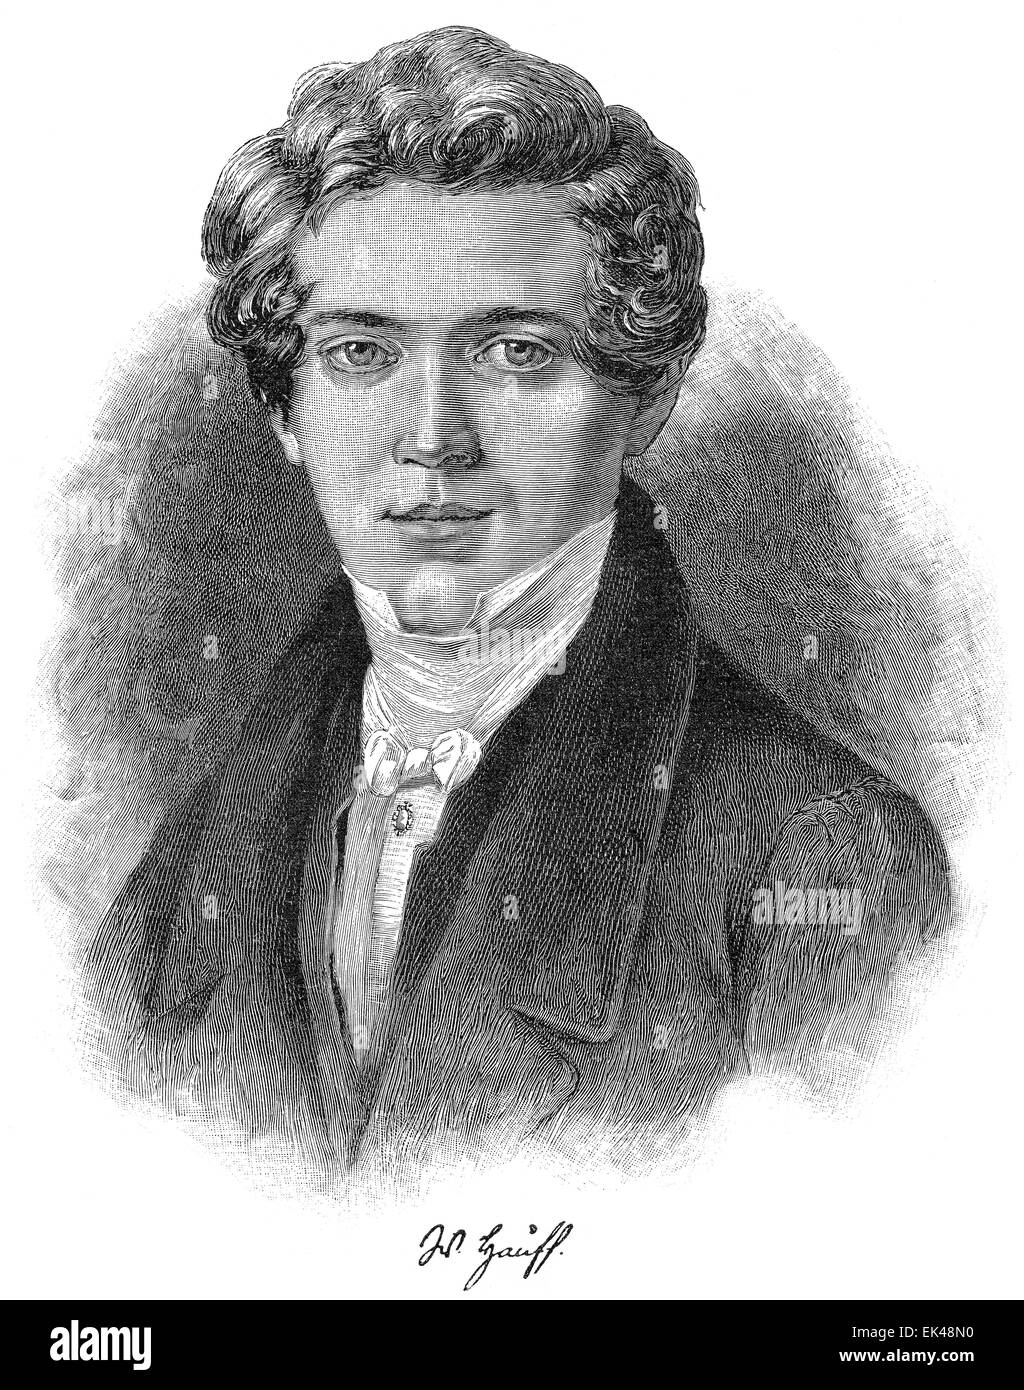 Wilhelm Hauff, 1802 - 1827, a German writer of the Romantic era, Stock Photo